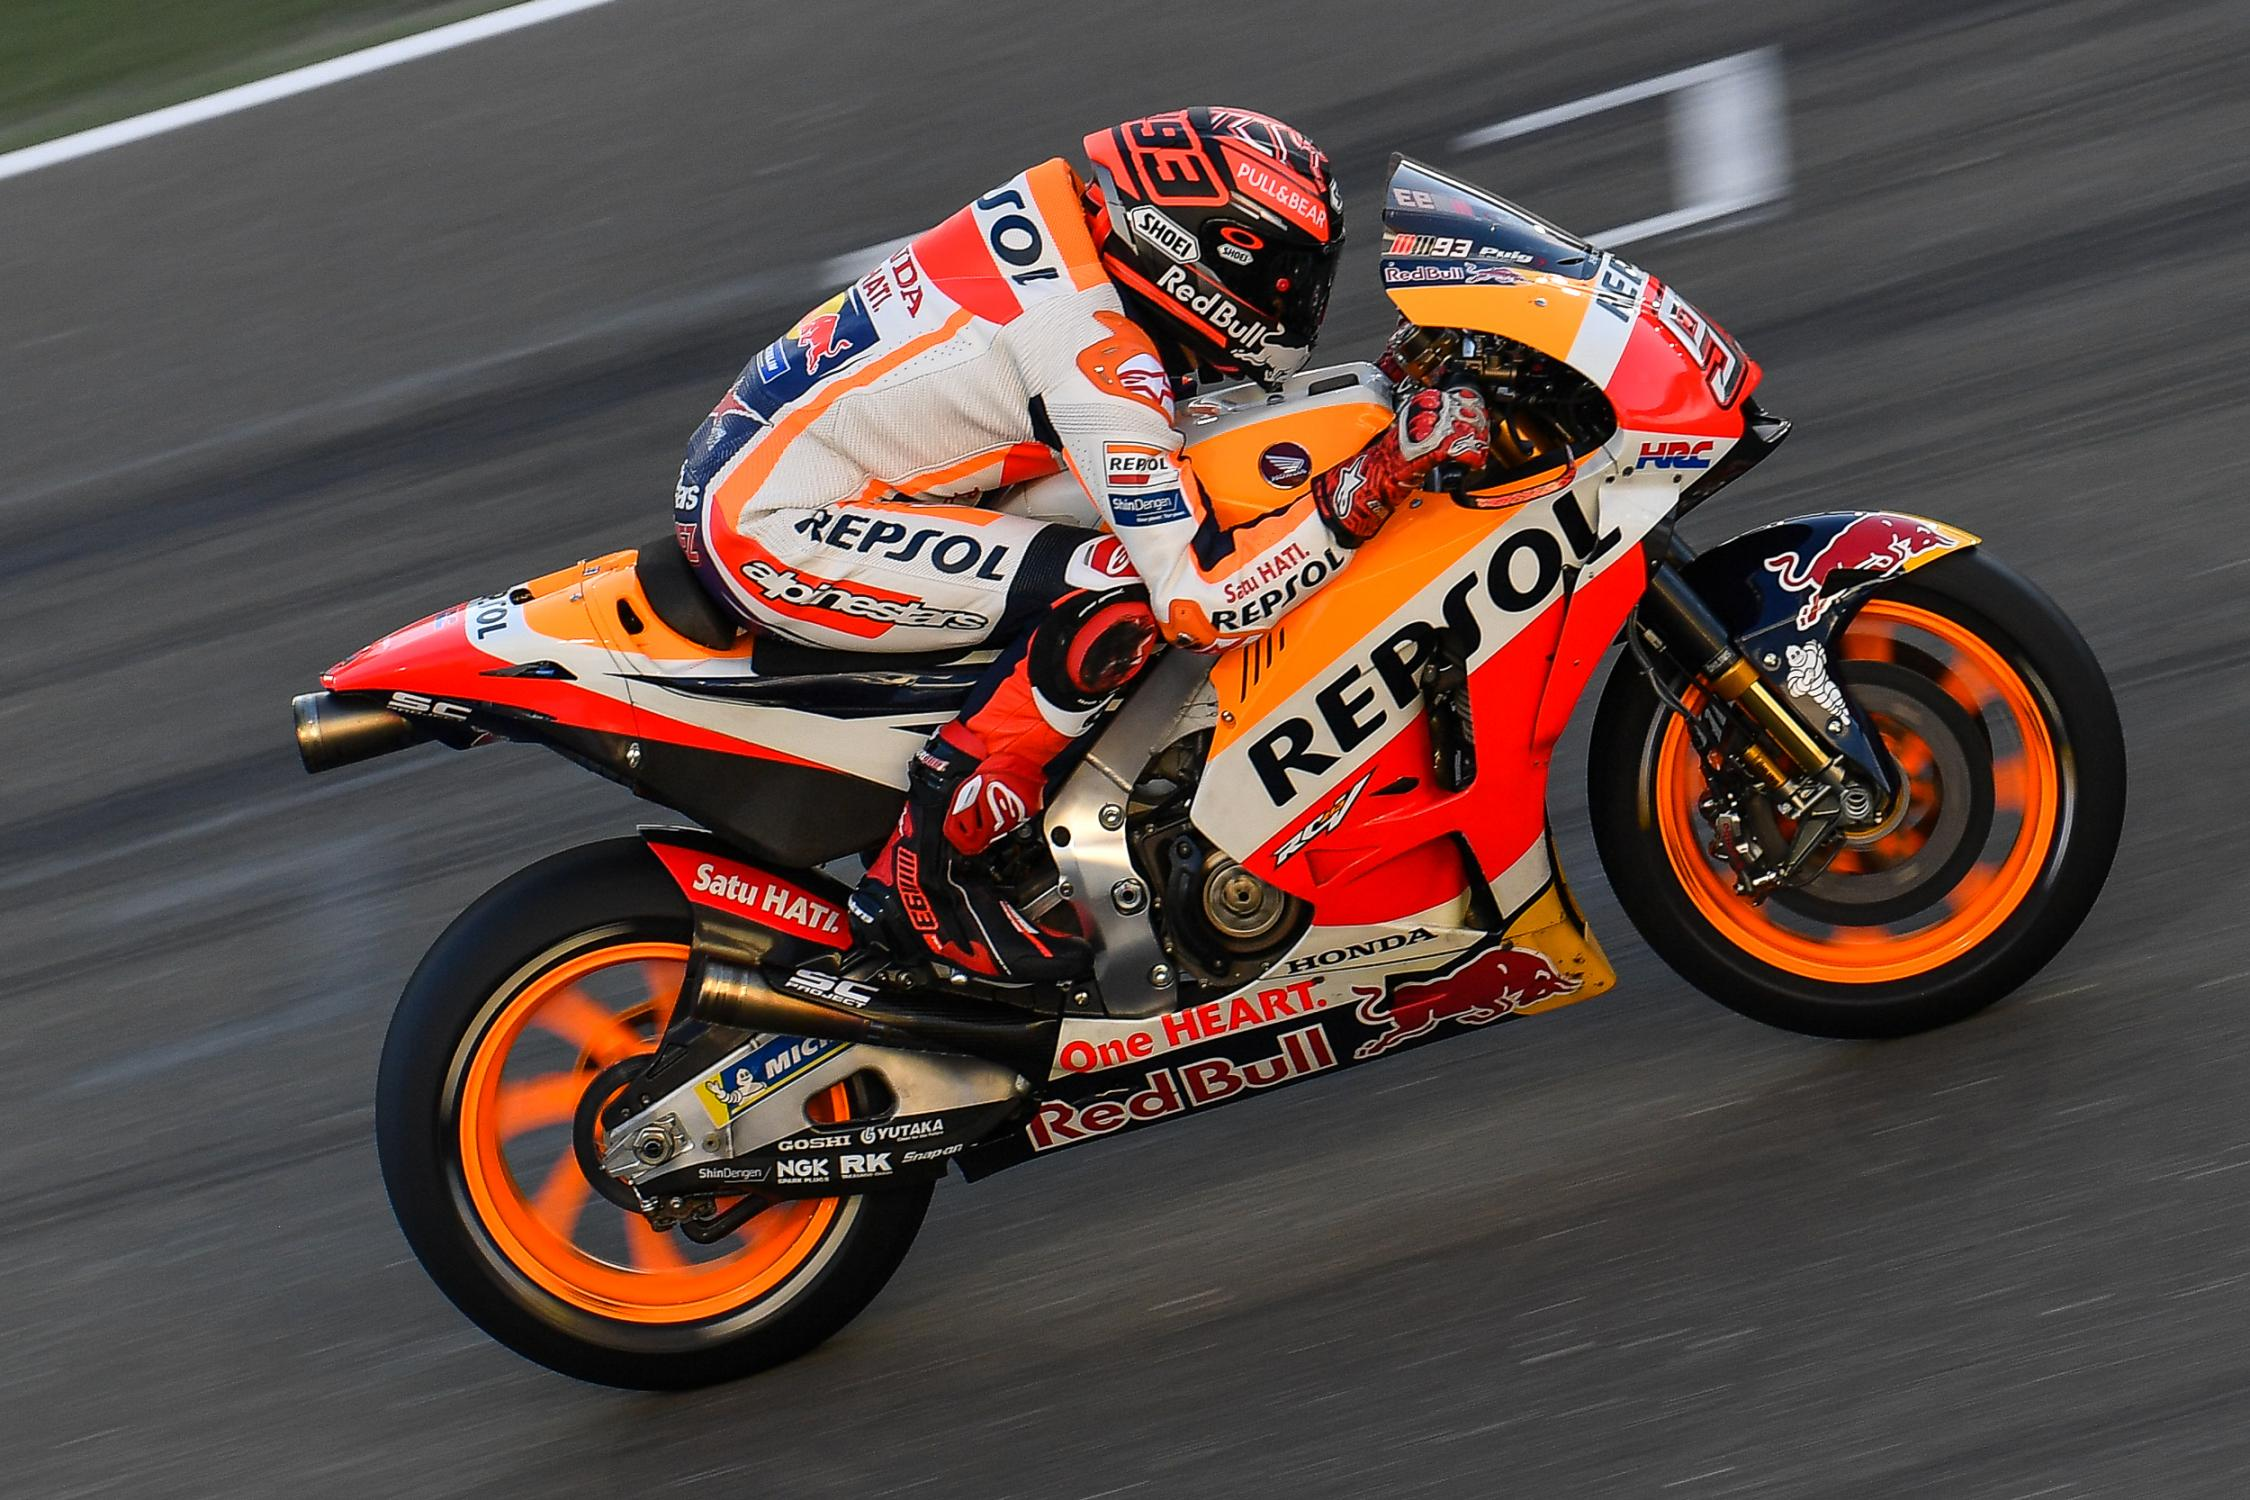 93-marc-marquez-esplg5_5402.gallery_full_top_fullscreen.jpg